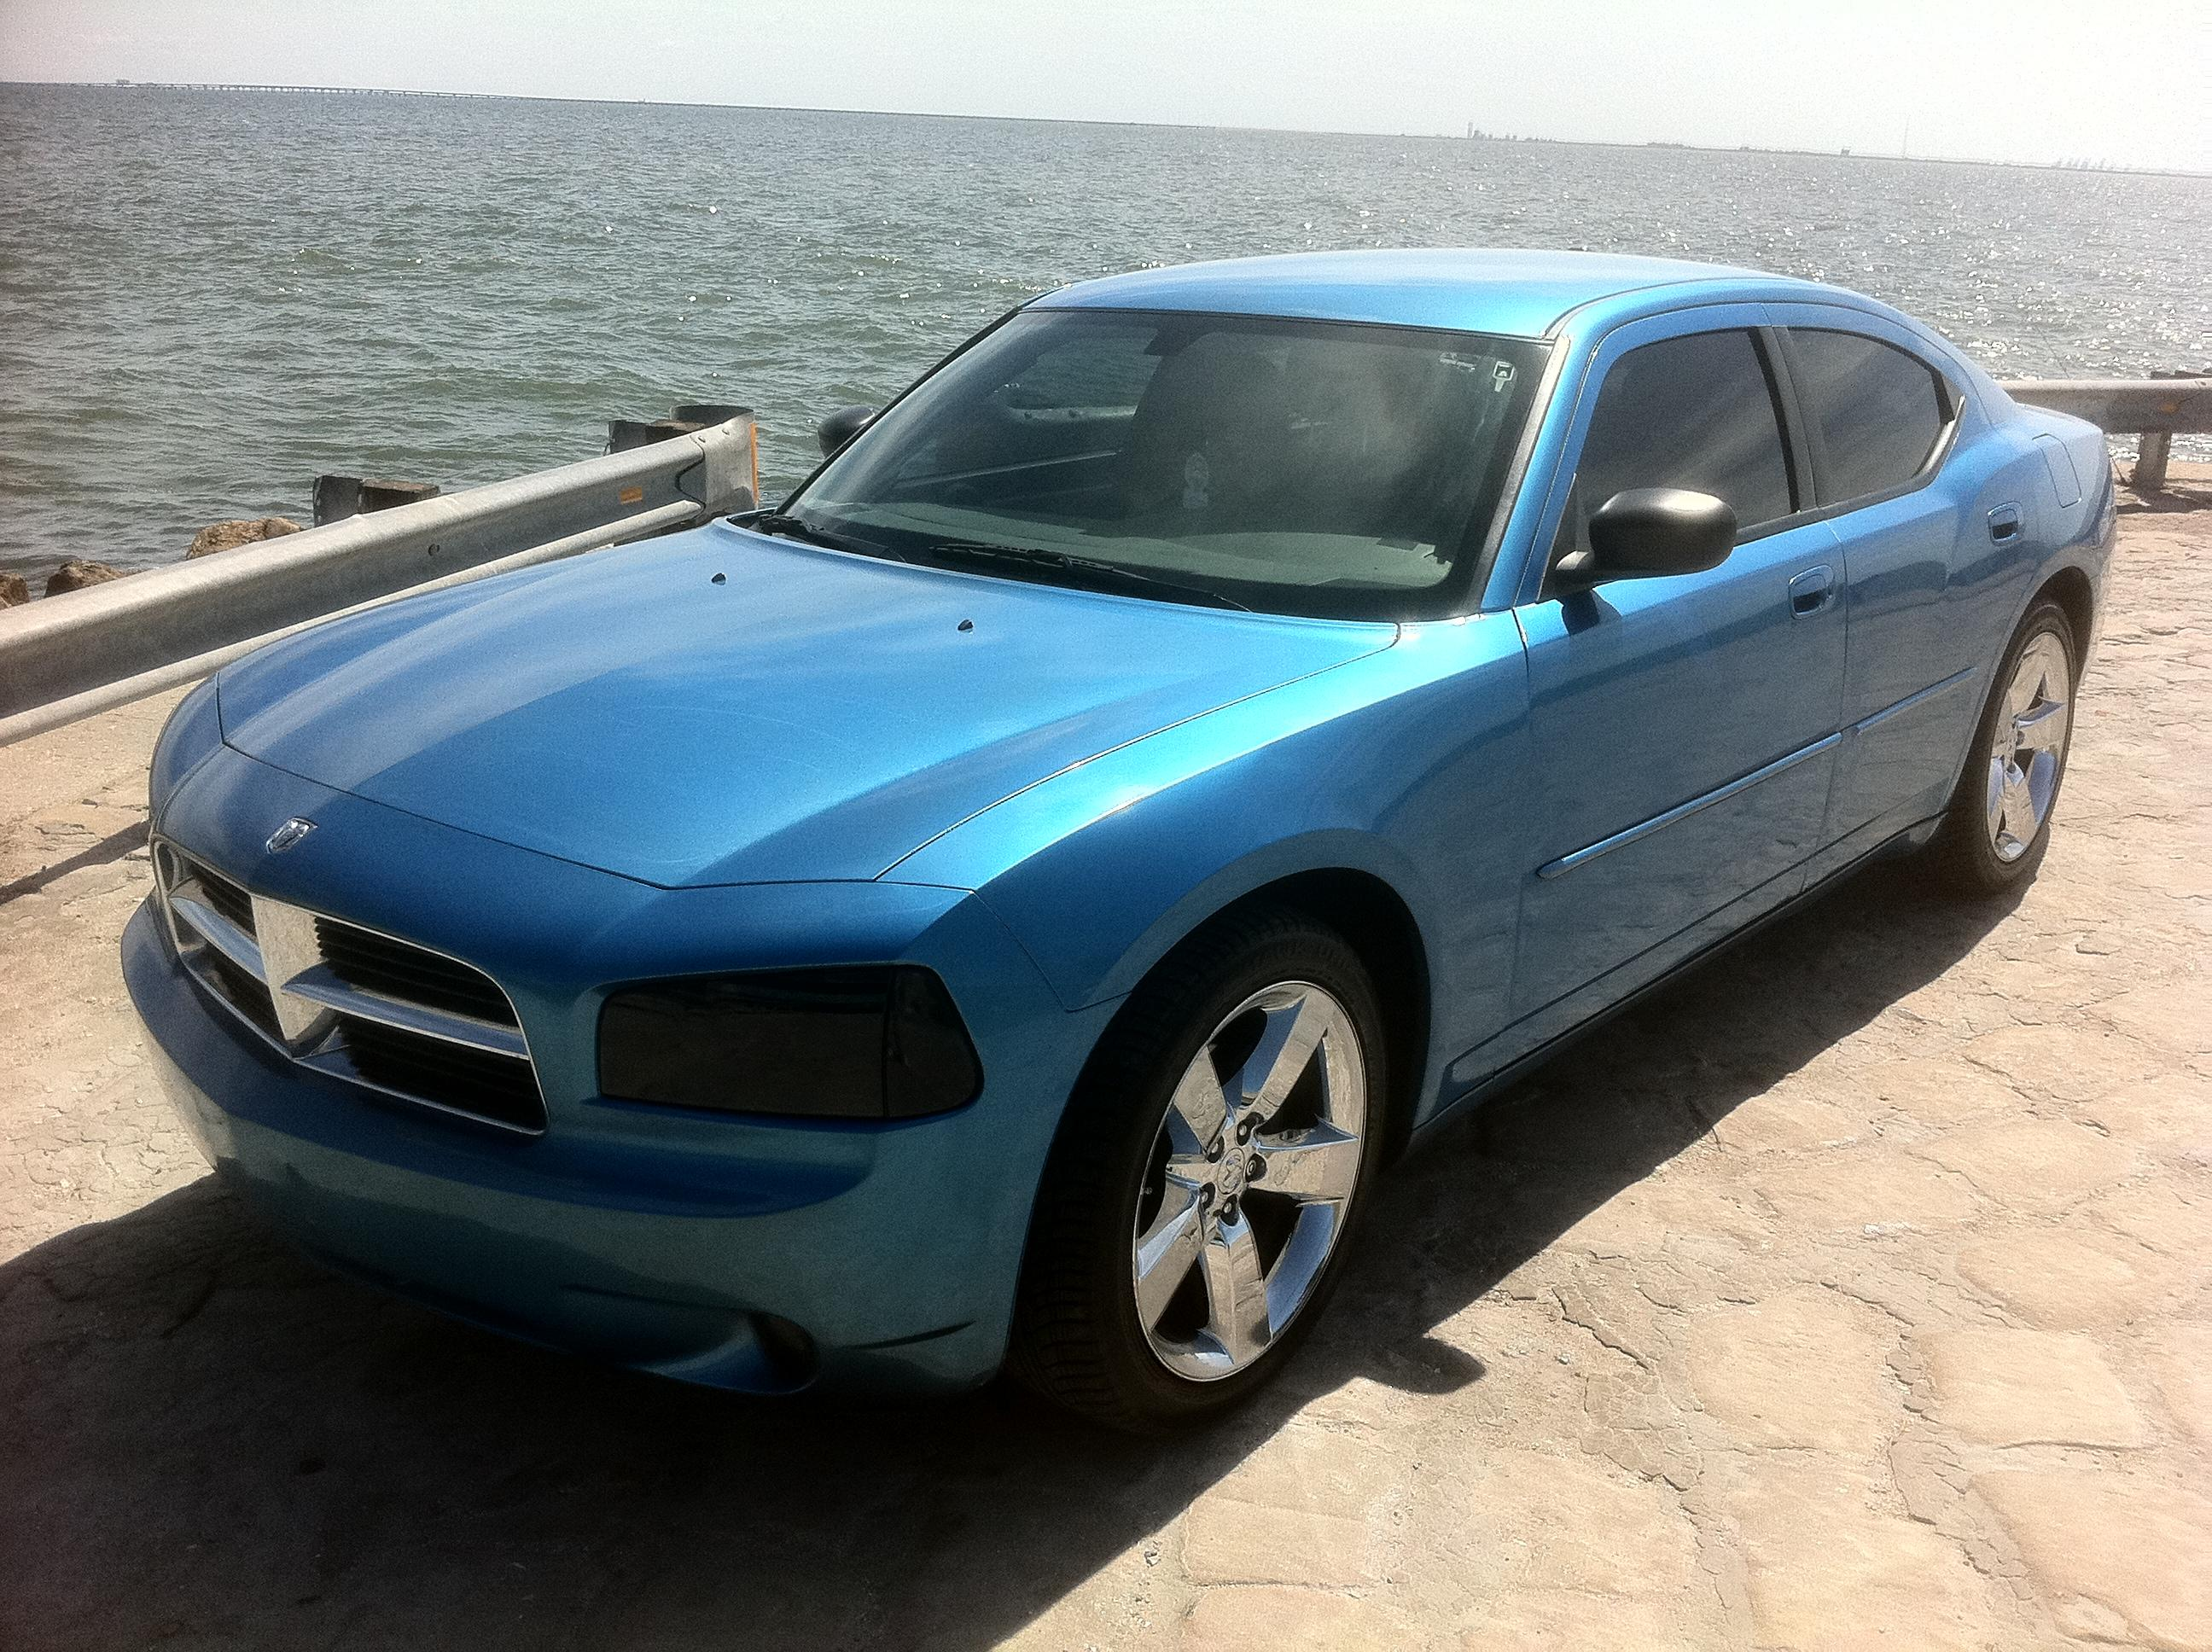 cpcjuicegang 39 s 2006 dodge charger sxt sedan 4d in atlanta ga. Black Bedroom Furniture Sets. Home Design Ideas